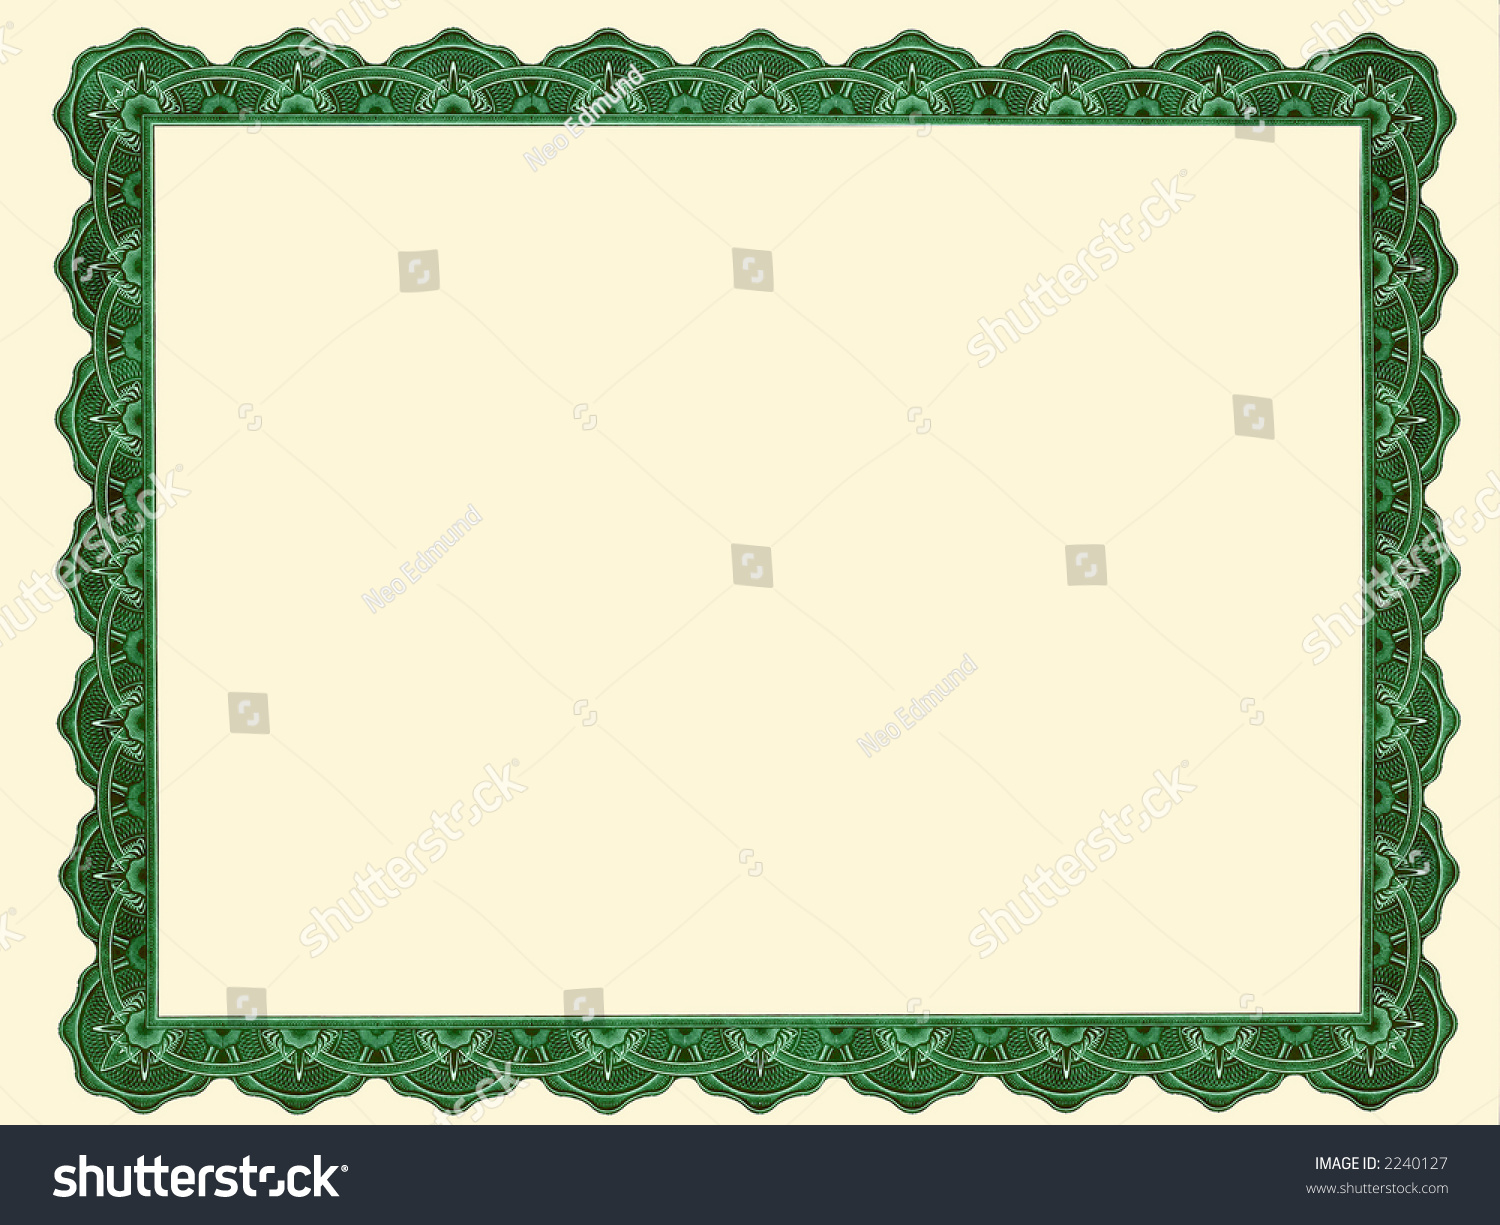 Certificate Frame Stock Illustration 2240127 - Shutterstock